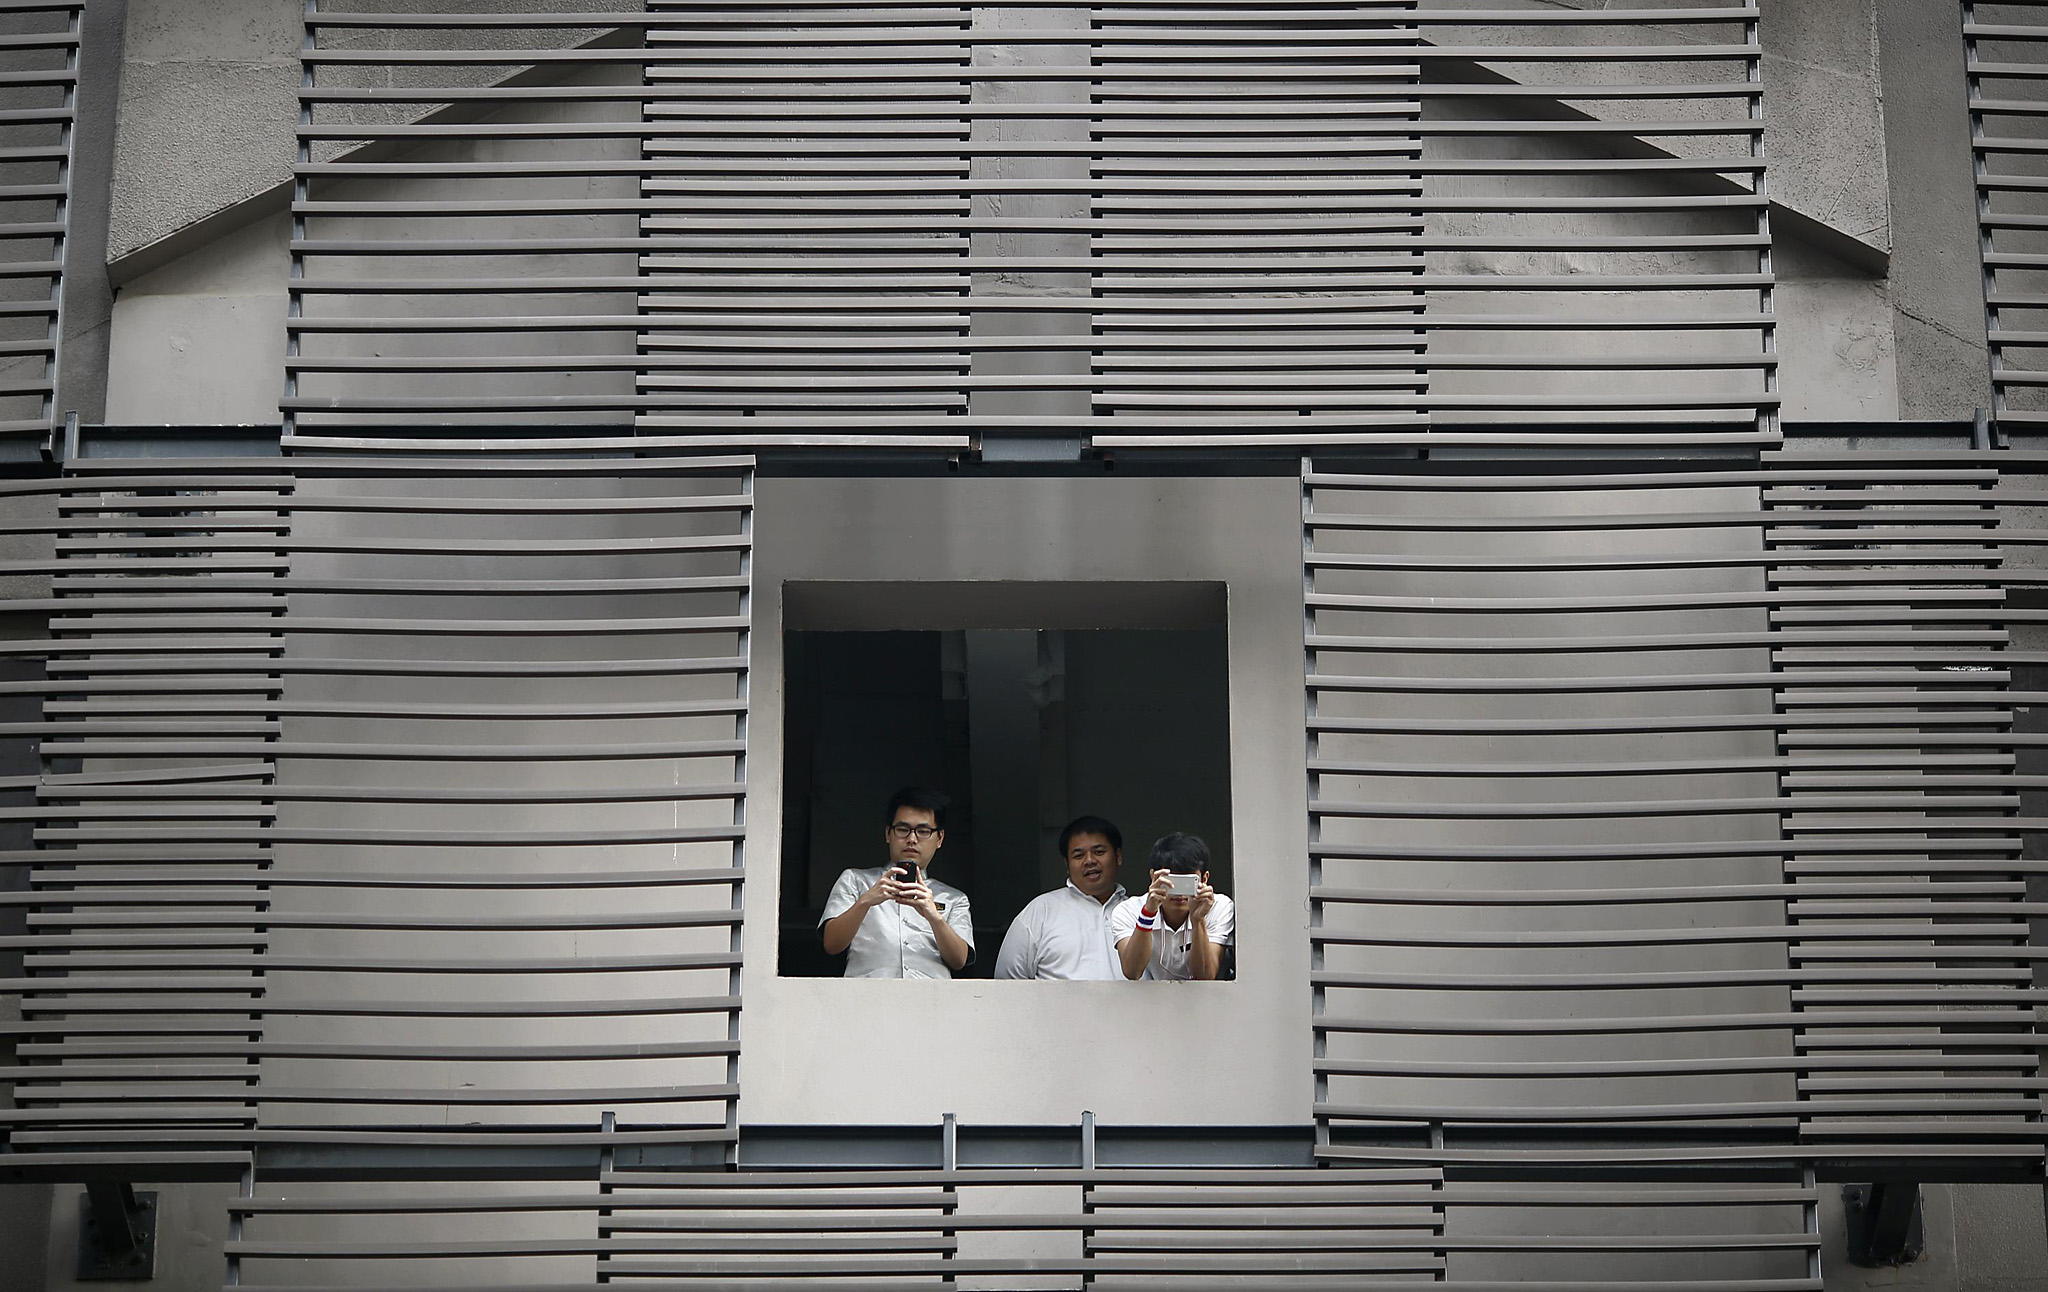 Employees take pictures though a window as anti-government protesters march through Bangkok's business district...Employees take pictures though a window as anti-government protesters march through Bangkok's business district January 23, 2014. The government declared a 60-day state of emergency from Wednesday hoping to prevent an escalation in protests now in a third month.  REUTERS/Damir Sagolj